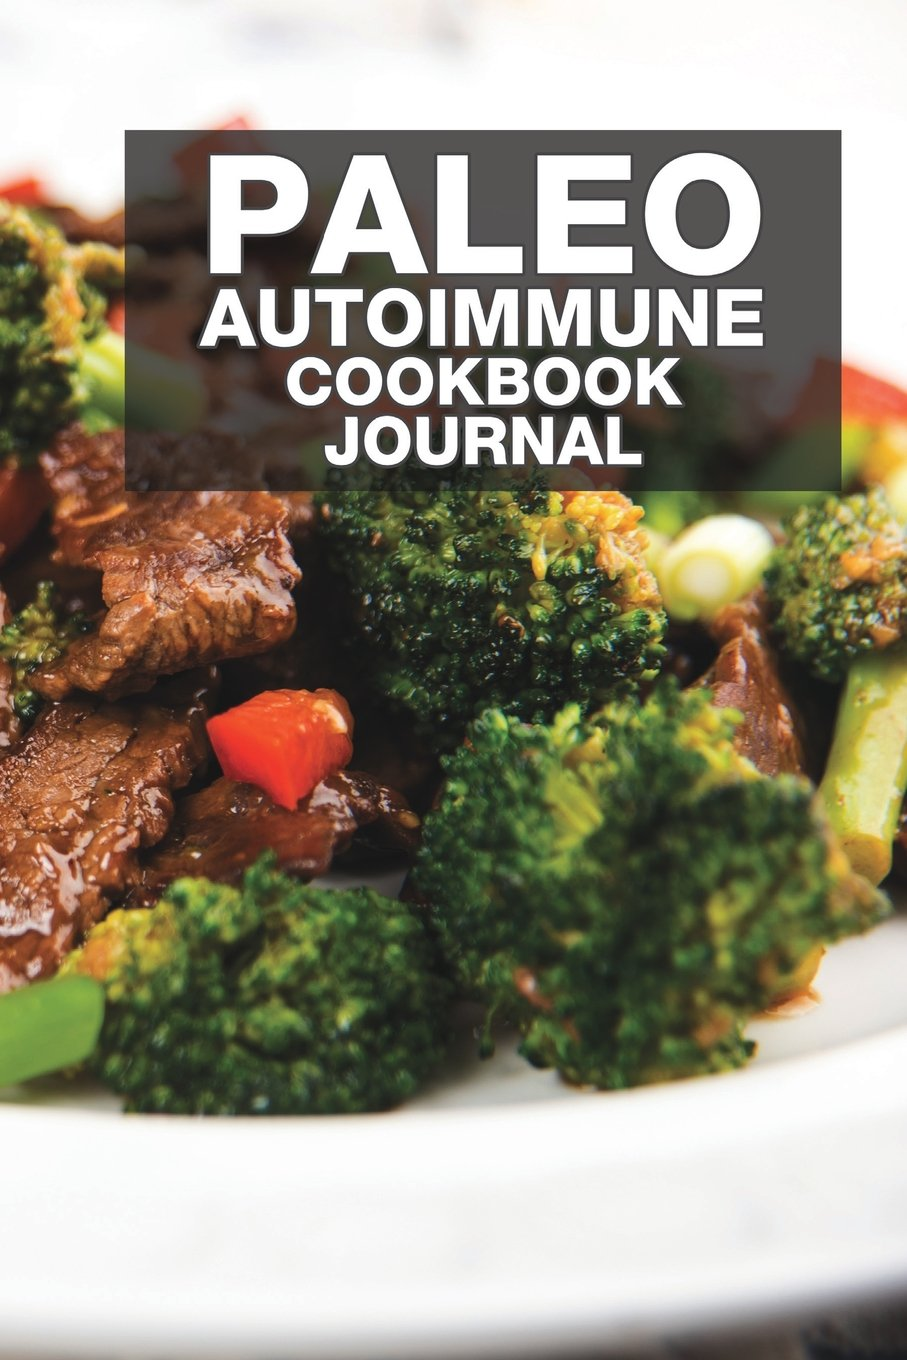 Paleo Autoimmune Cookbook Journal